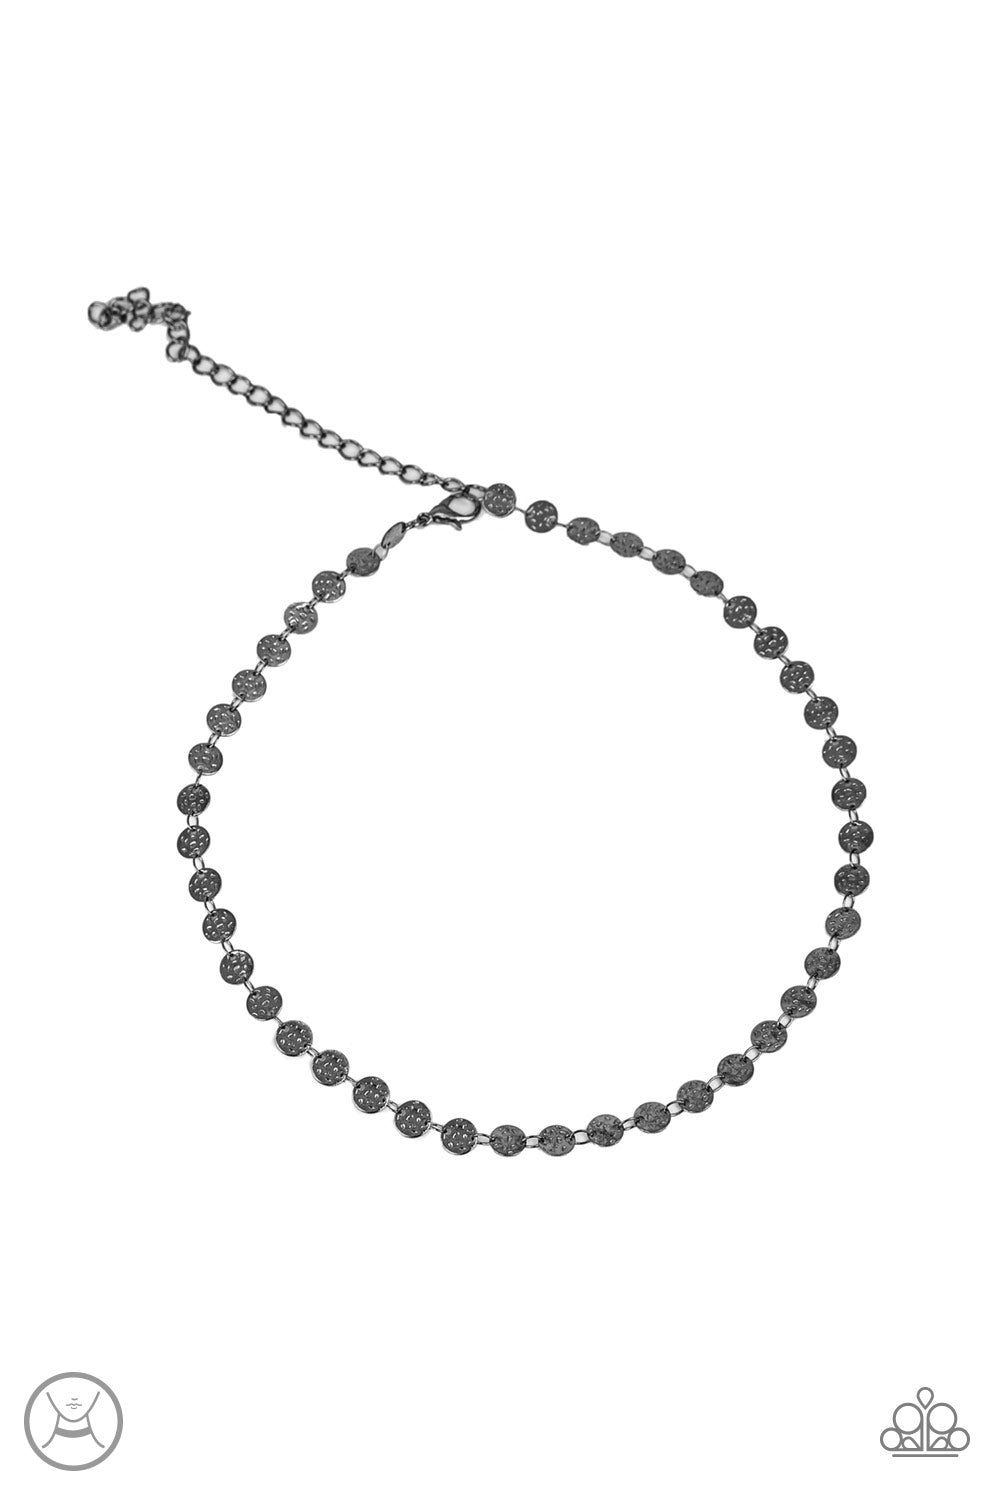 Paparazzi Accessories - Summer Spotlight - Black Necklace Set - JMJ Jewelry Collection